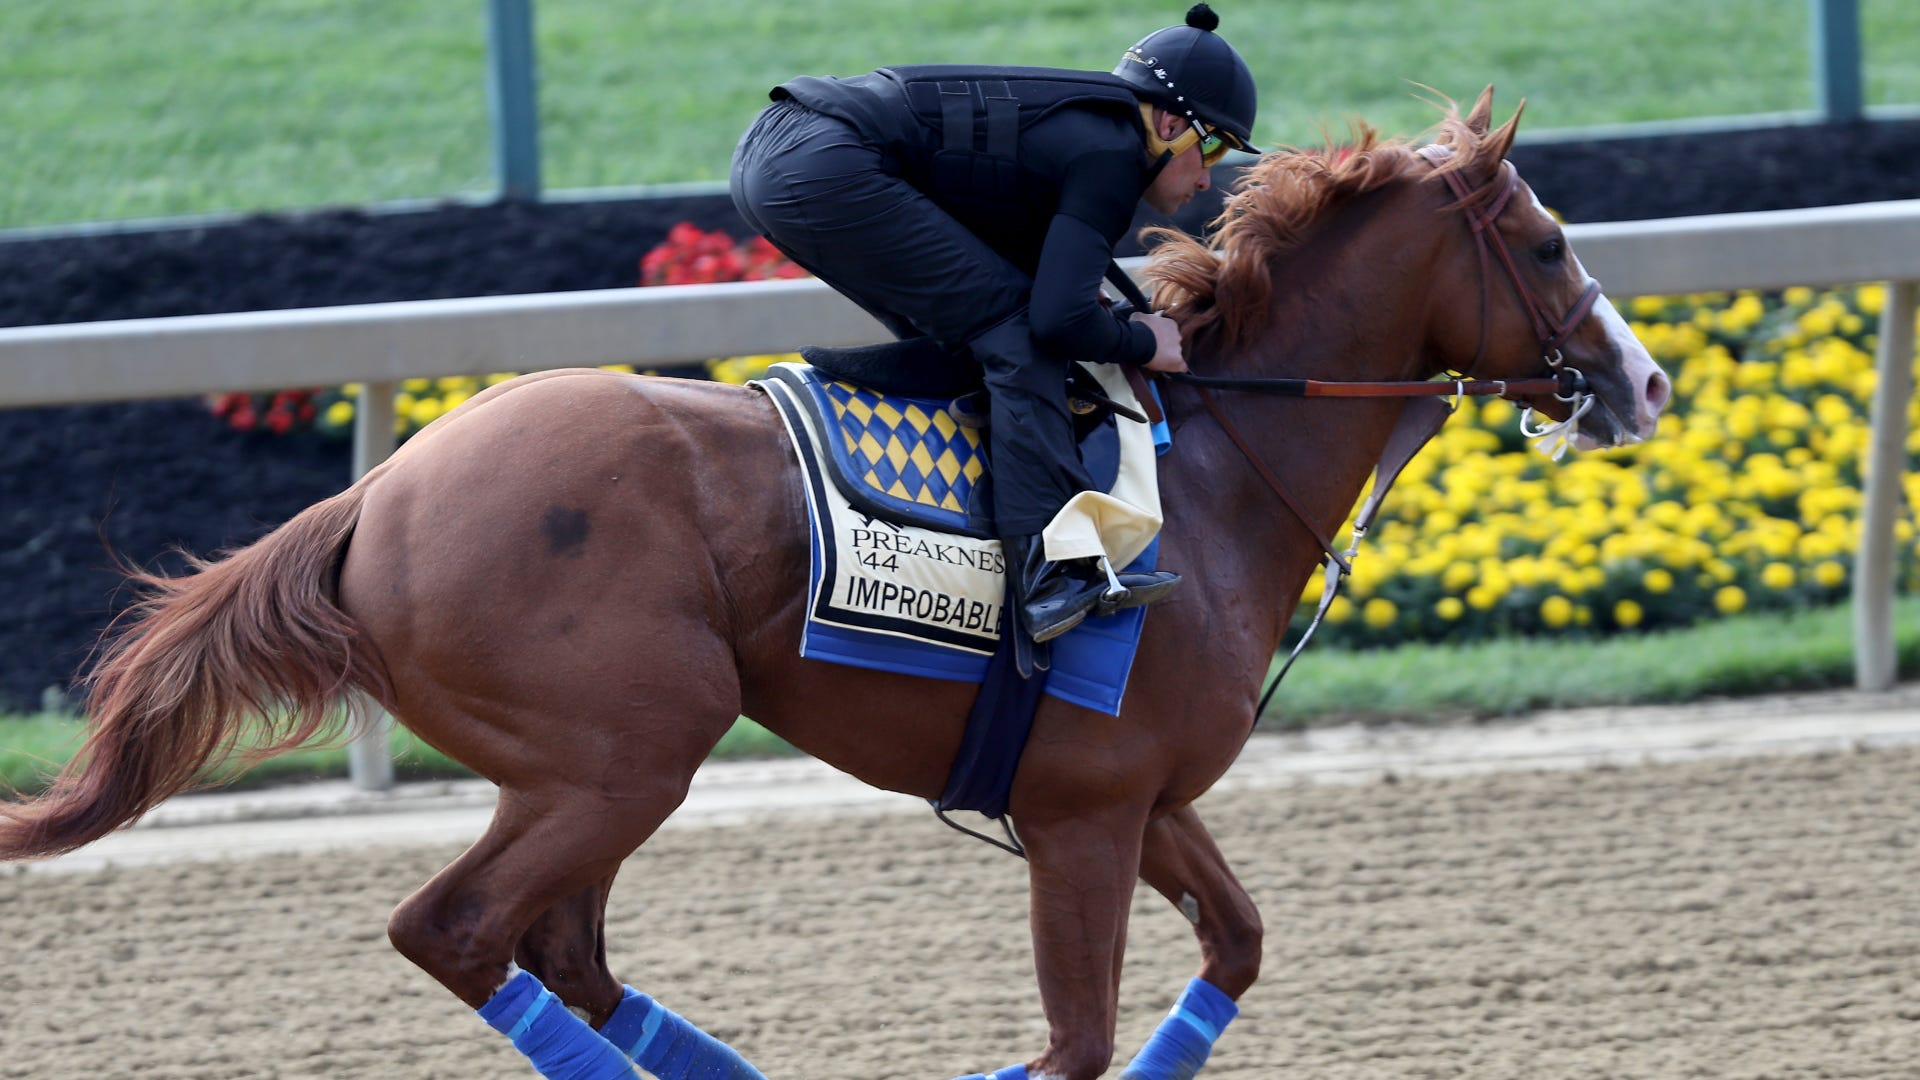 Preakness Stakes 2019: Start Time, Horses, Odds, Betting Guide